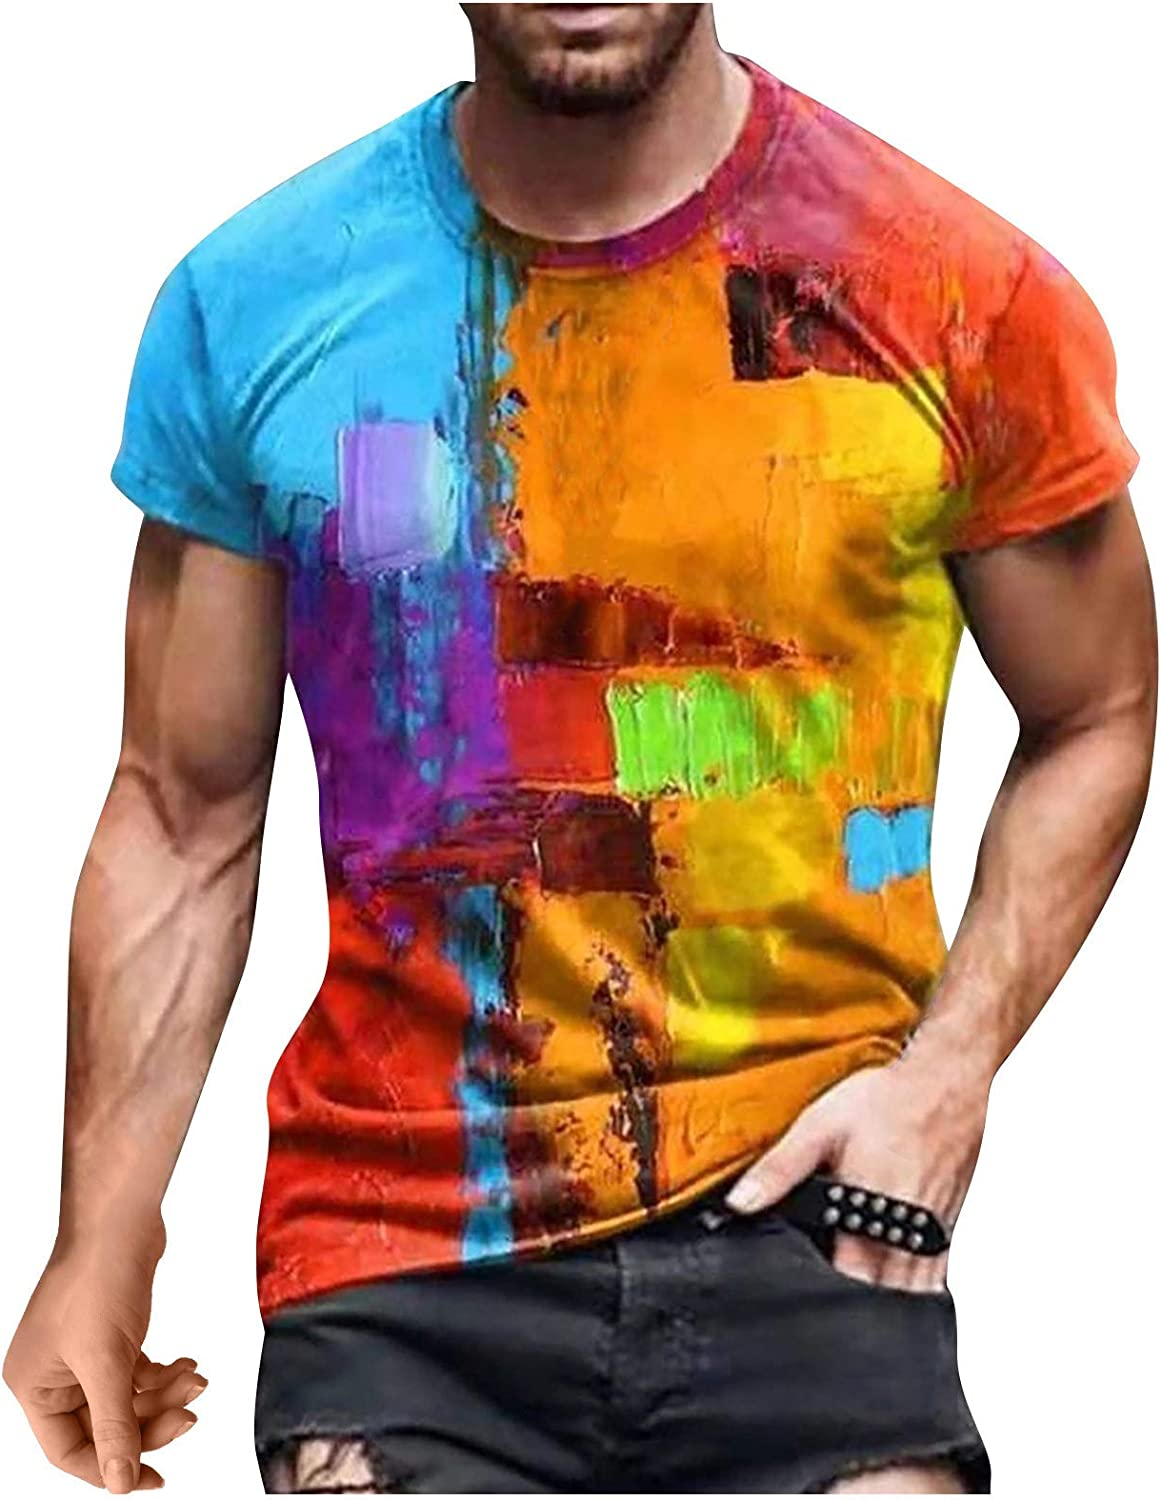 FUNEY Men's Casual Summer Shirts Fashion 3D Print Tie Dye Crewneck Short Sleeve T-Shirt Big and Tall Graphic Tees for Men